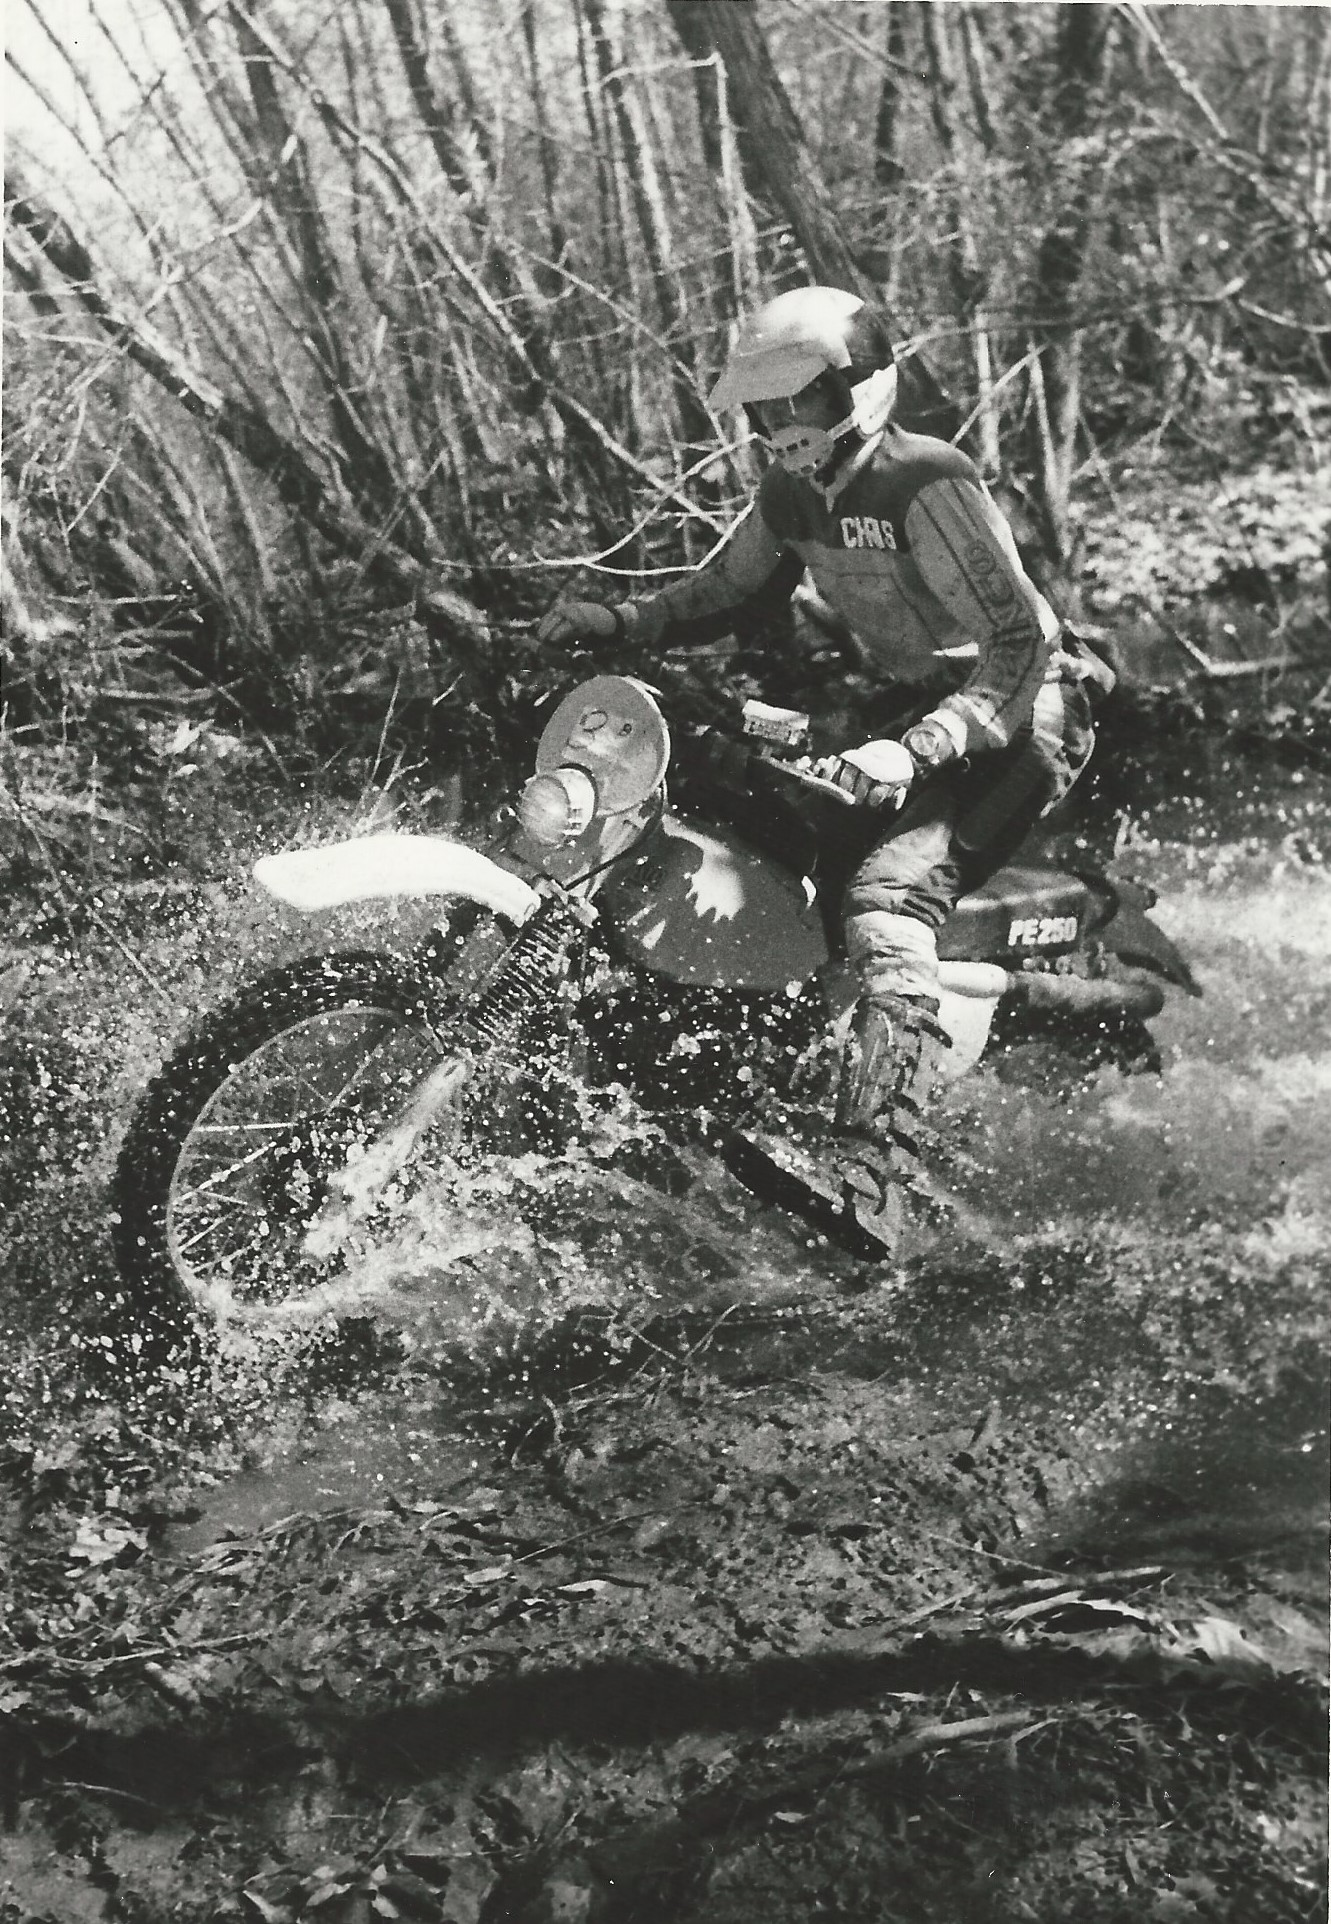 Twin States National Enduro 1979